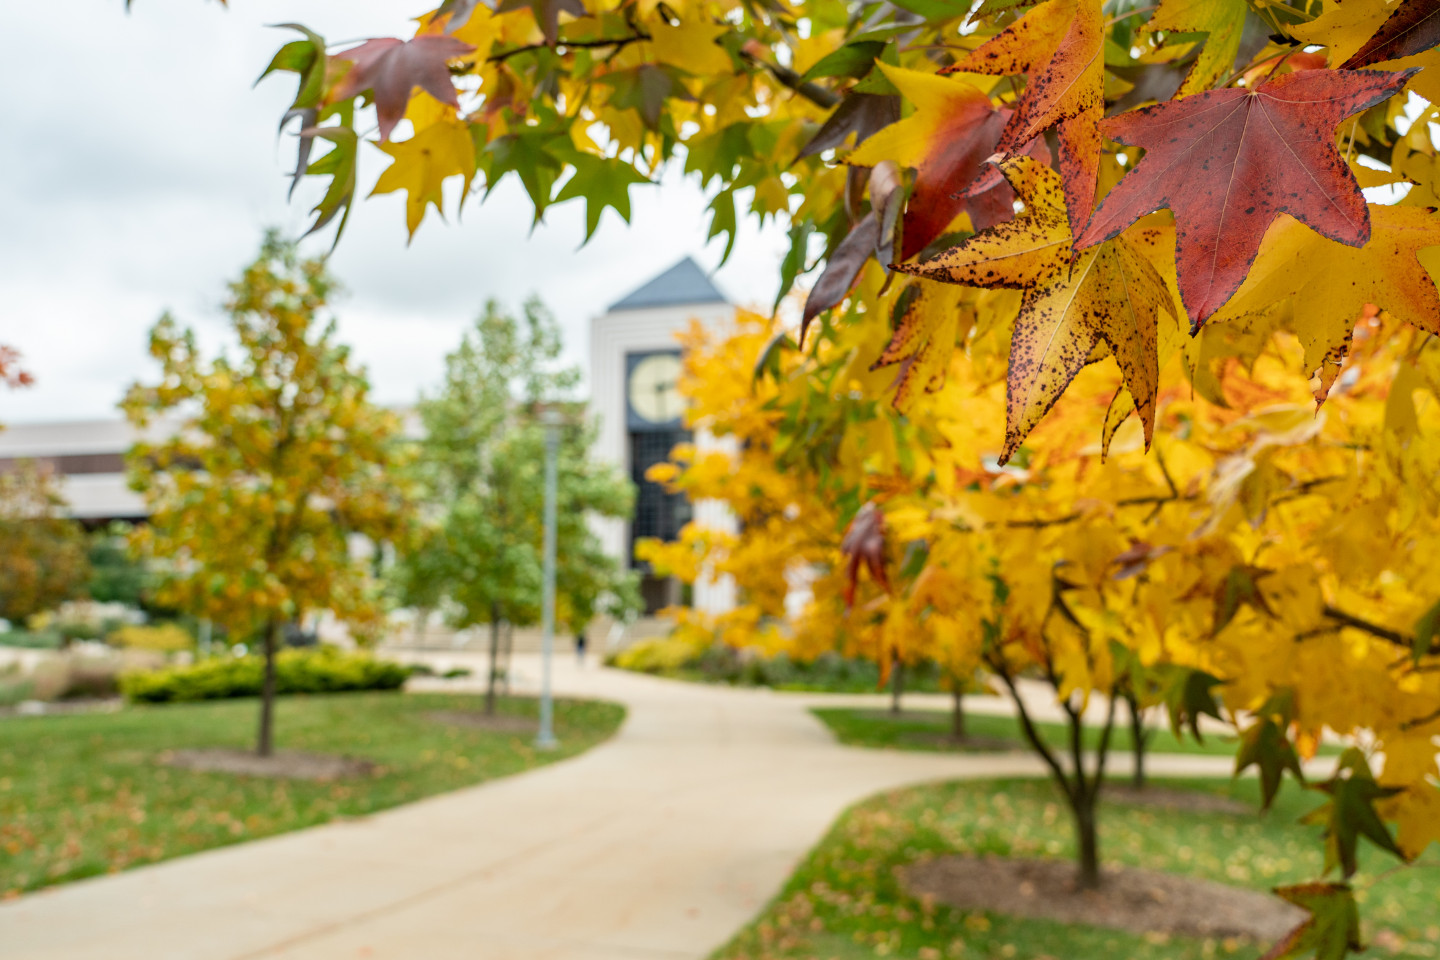 Photo of fall leaves on trees outside on campus.